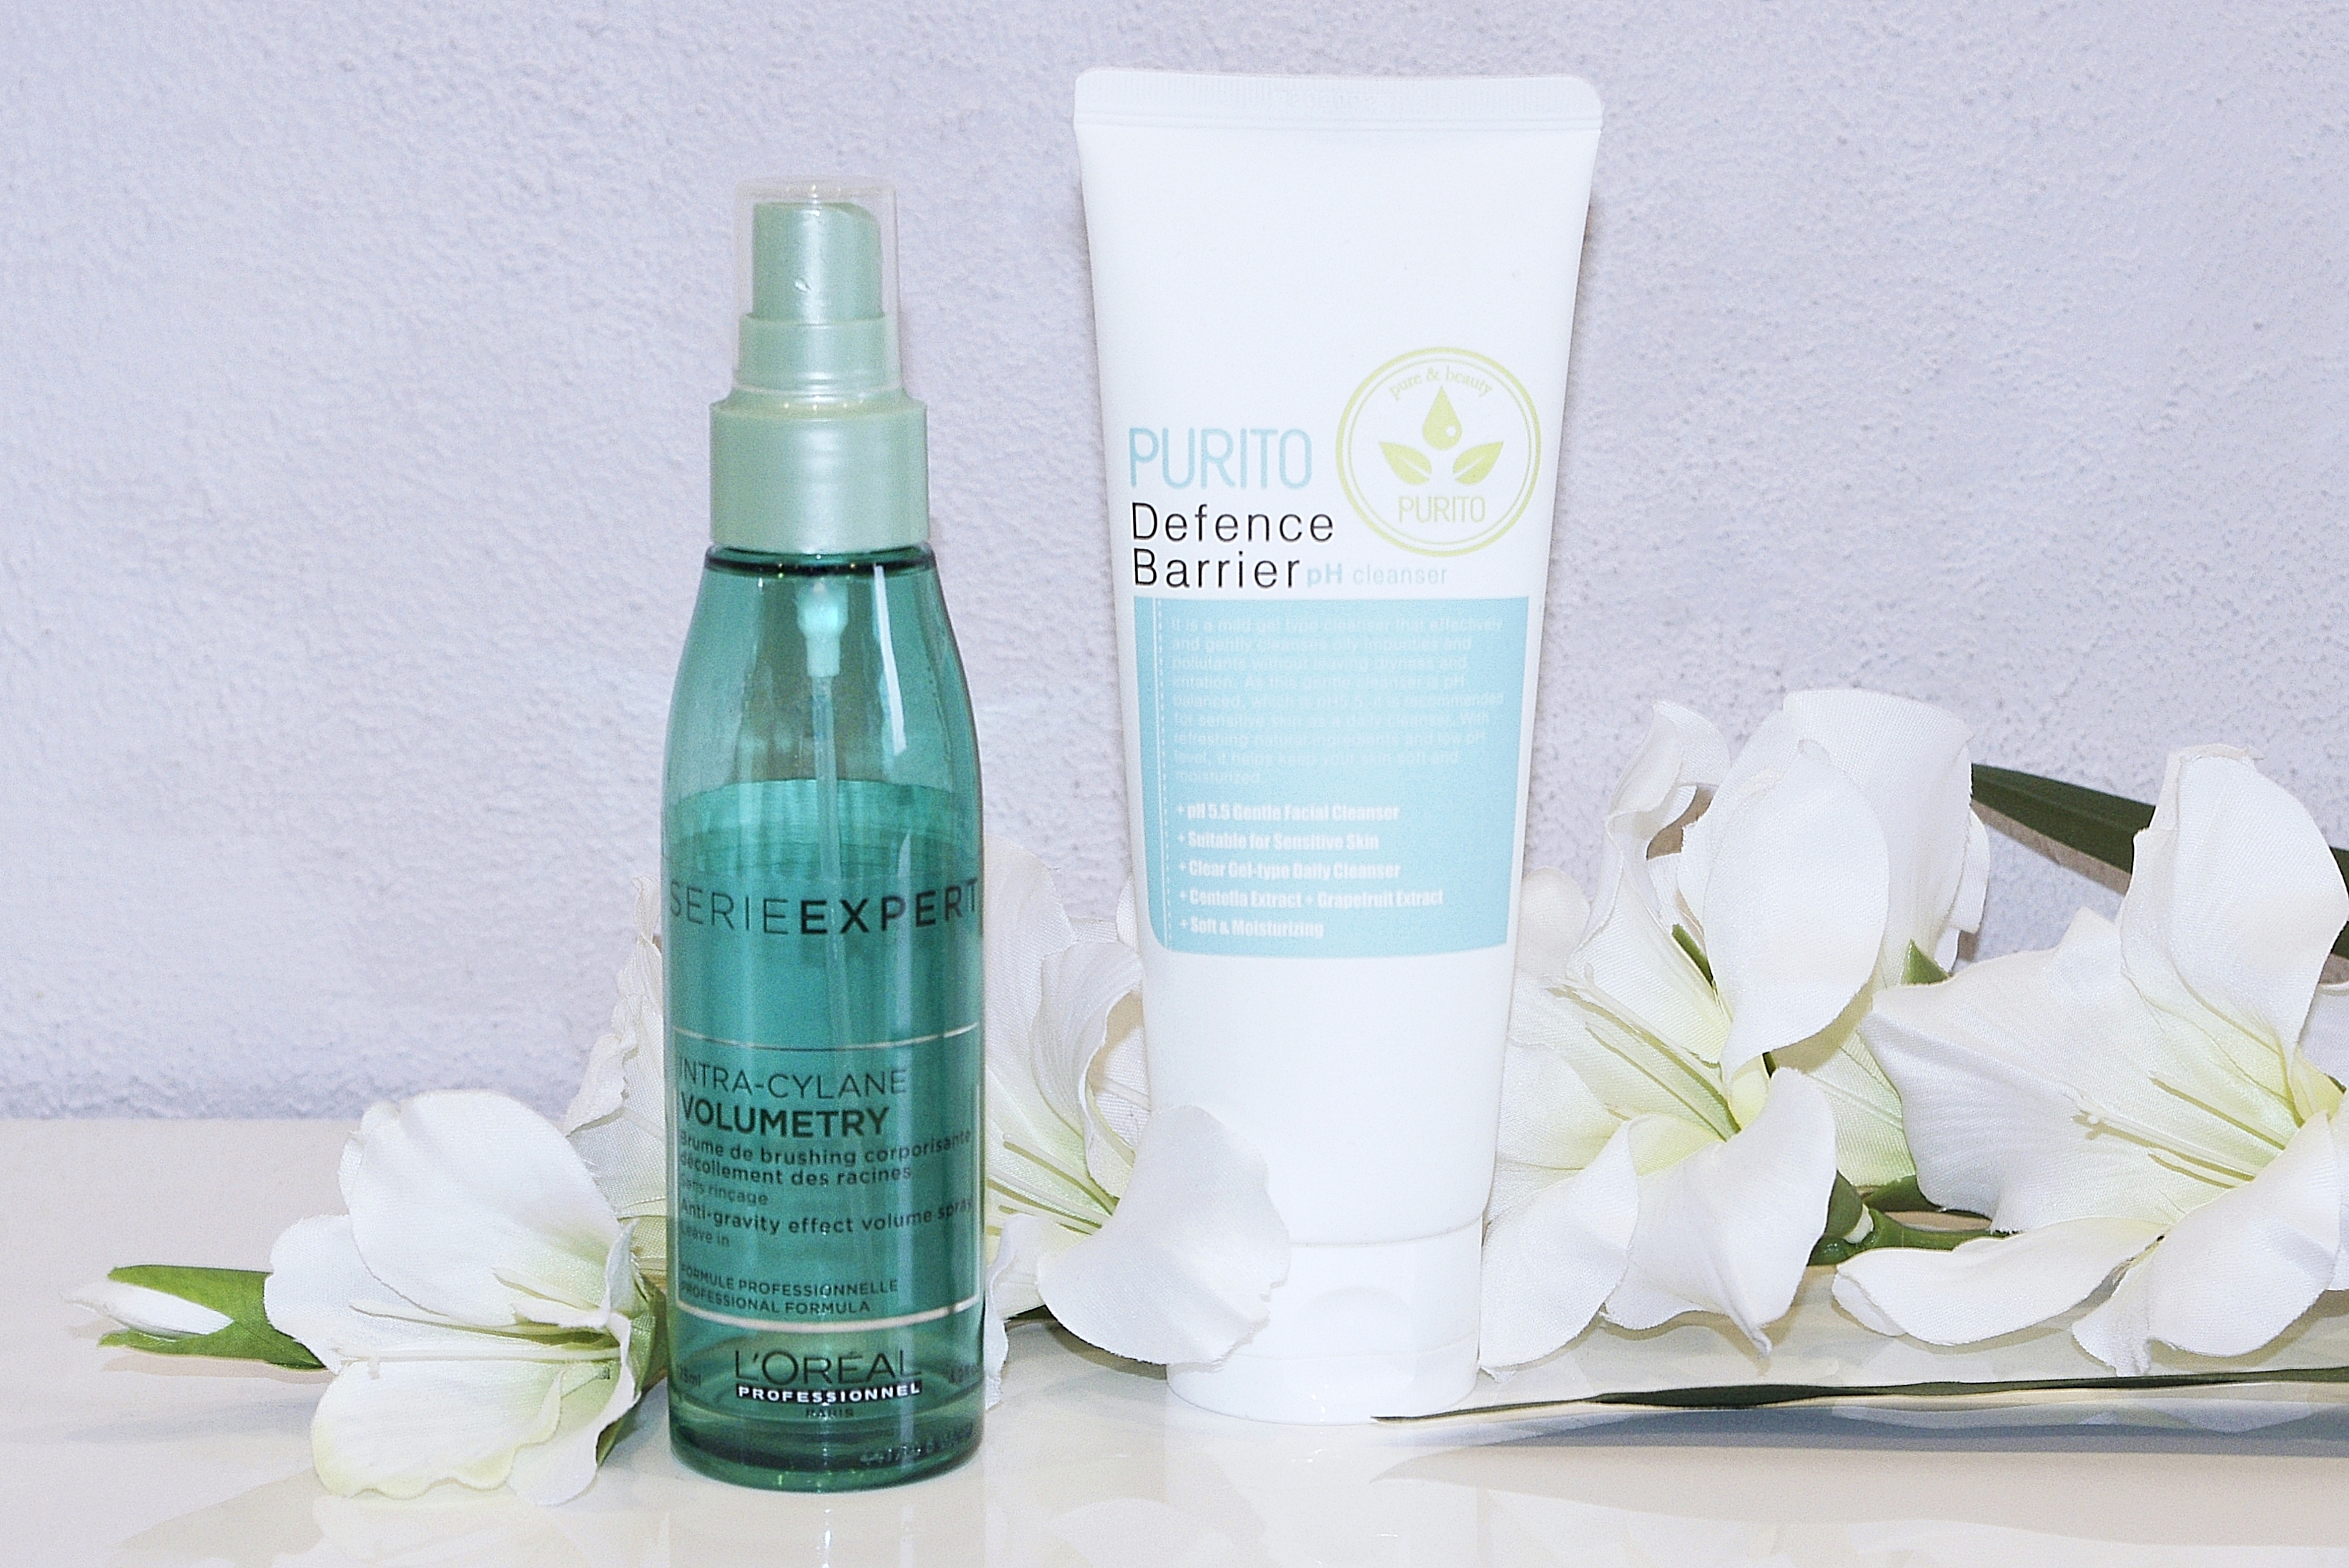 L'Oréal Professionnel Serie Expert Volumetry Spray Purito Defence Barrier pH Cleanser